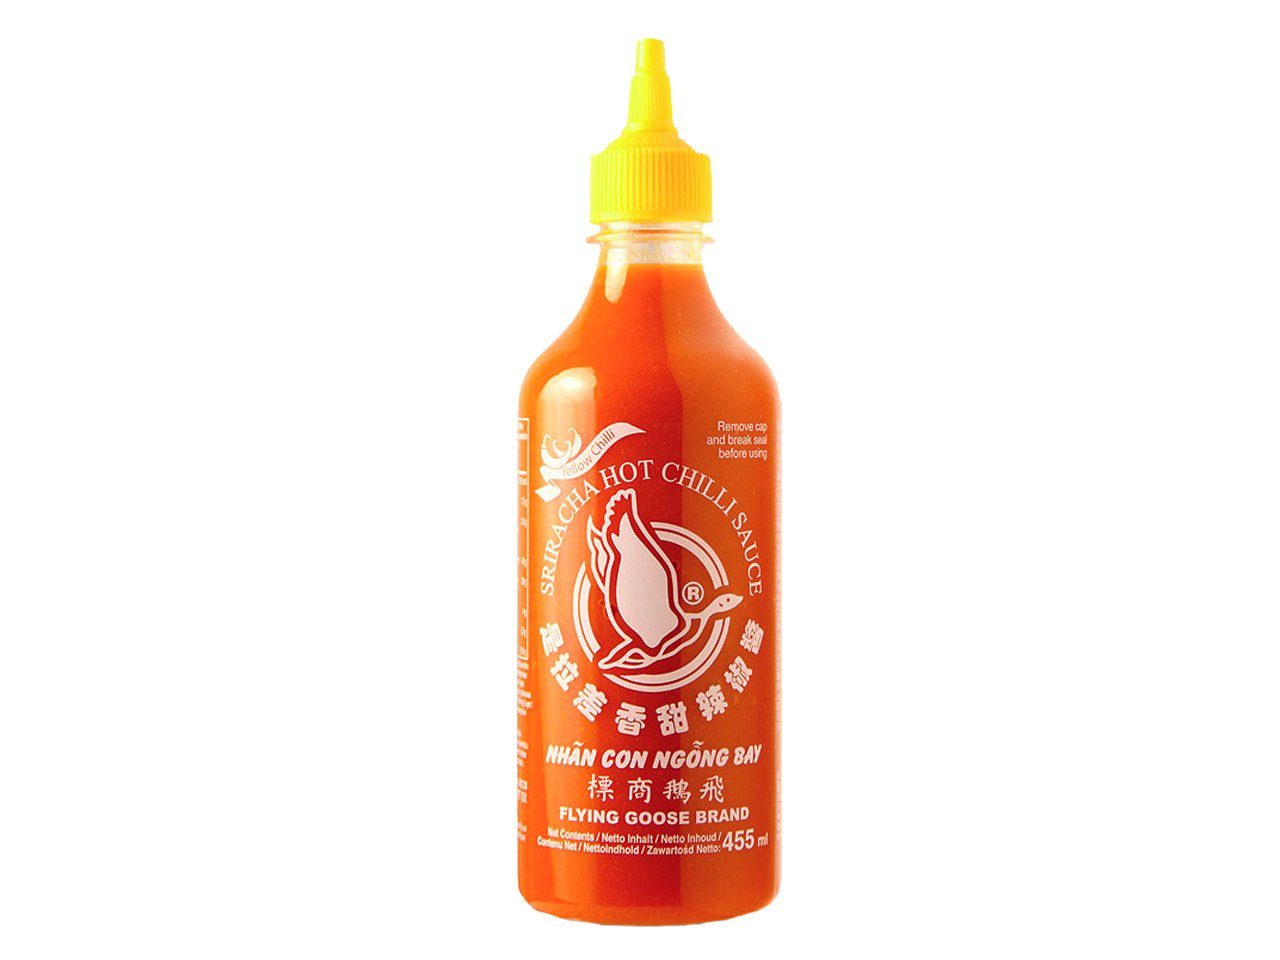 Flying Goose, Salsa de chile (Amarillo, Picante) - 12 de 455 ml. (Total 5460 ml.): Amazon.es: Alimentación y bebidas